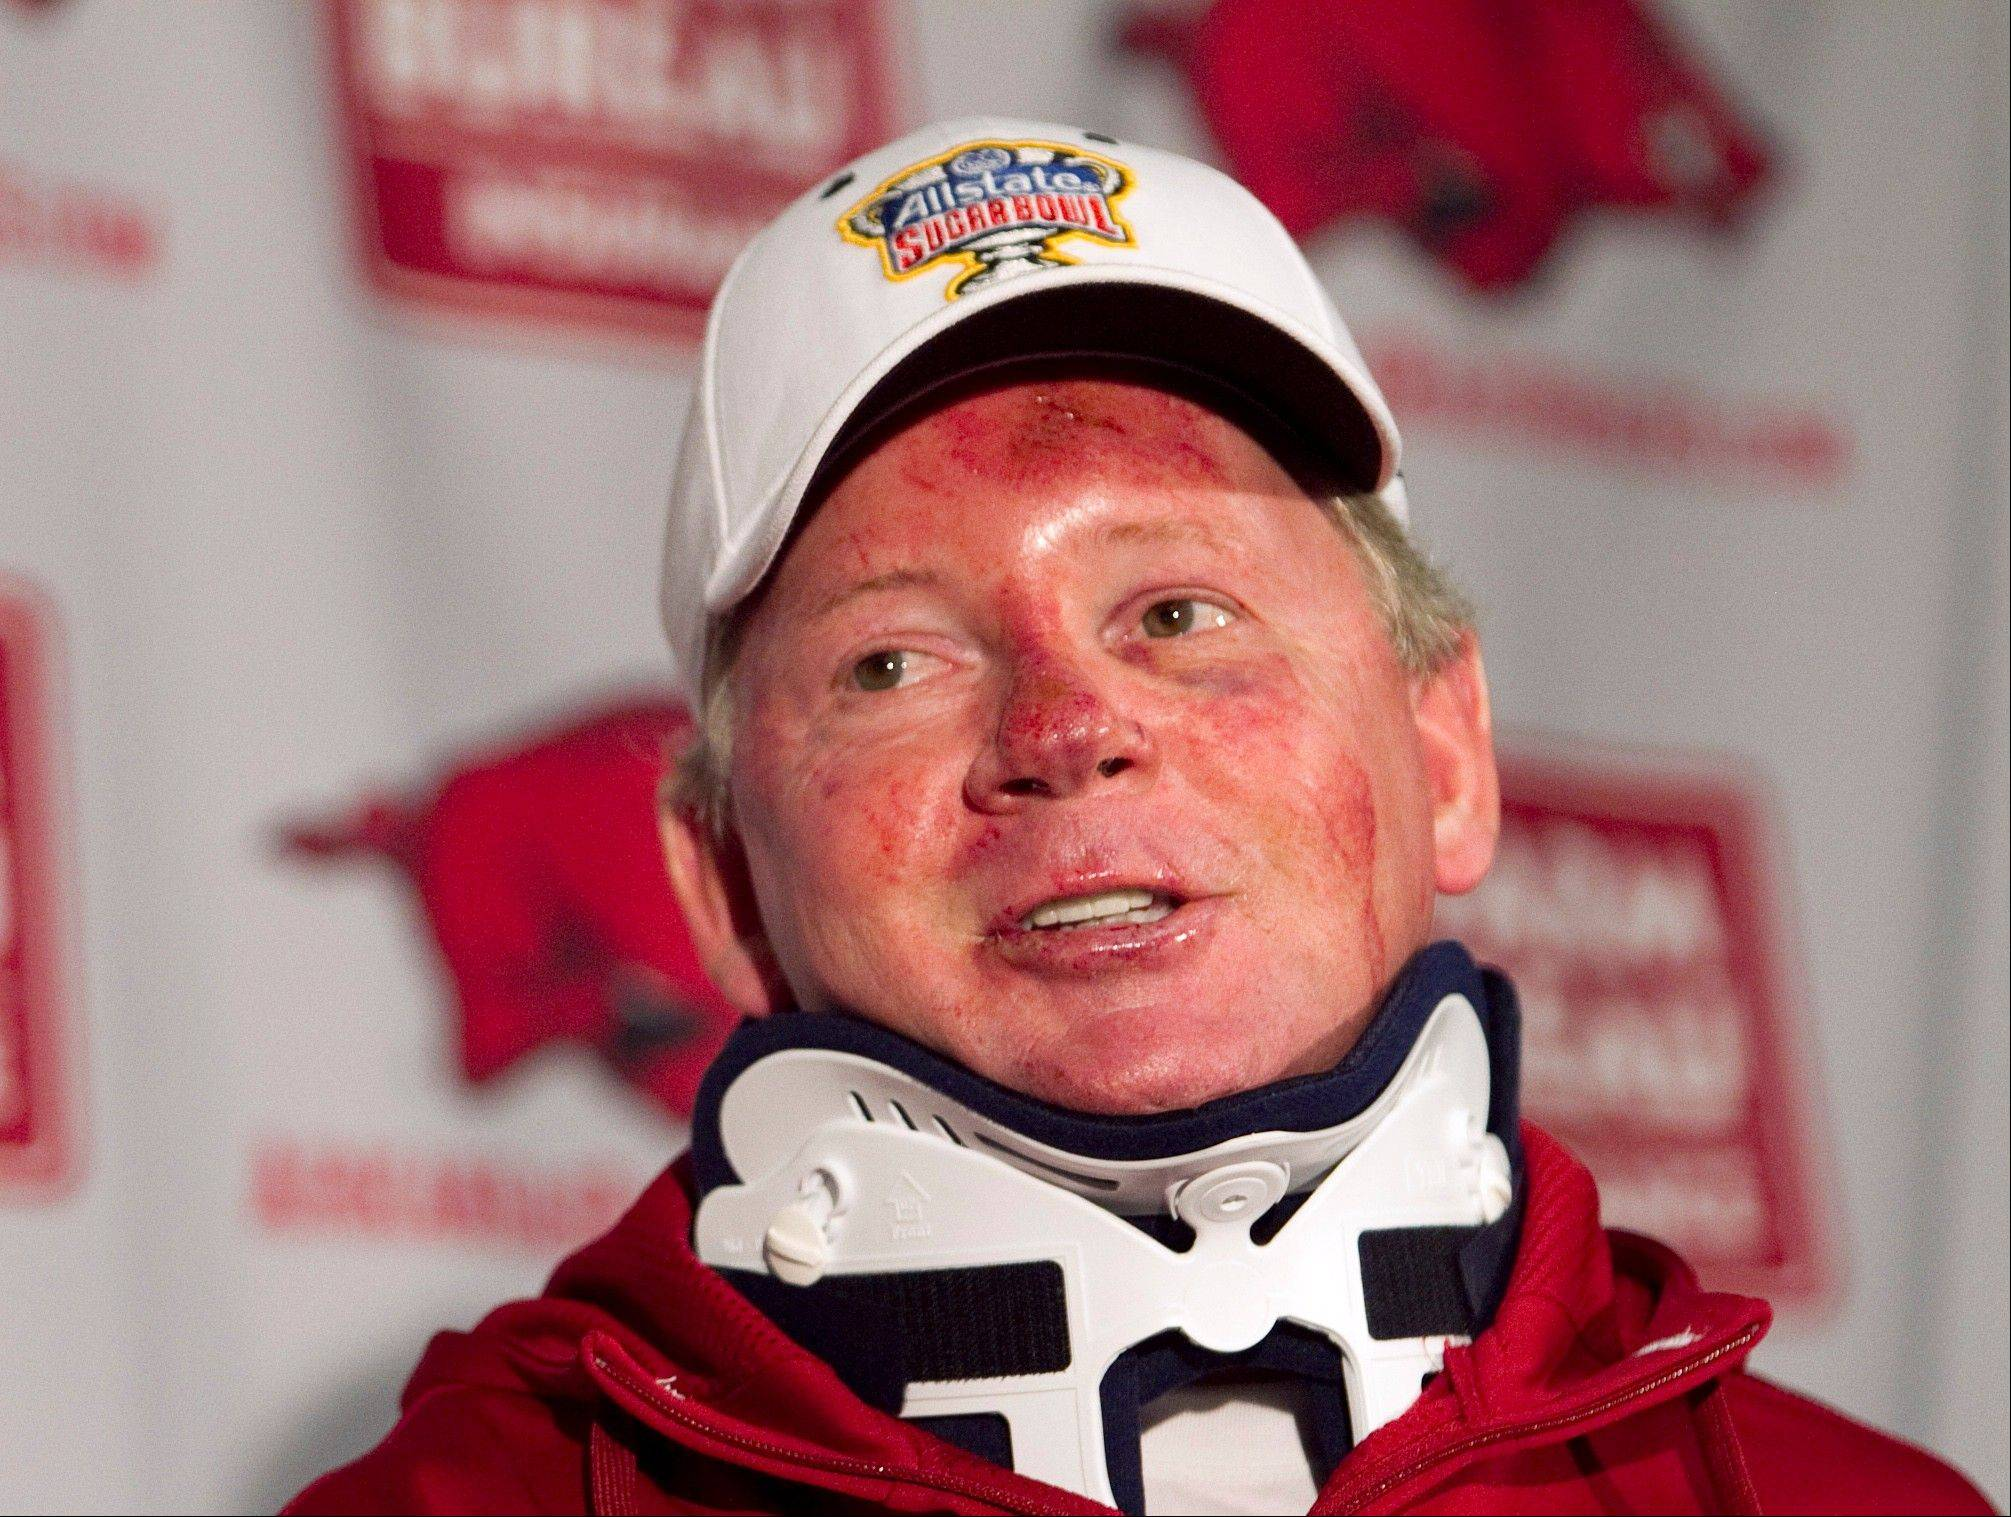 Bobby Petrino speaks during a news conference in Fayetteville, Ark., after he was injured in a motorcycle accident. He was dismissed as Arkansas� head football coach for a �pattern of misleading behavior� about the accident, in which he claimed to be alone before revealing that his mistress was a passenger.